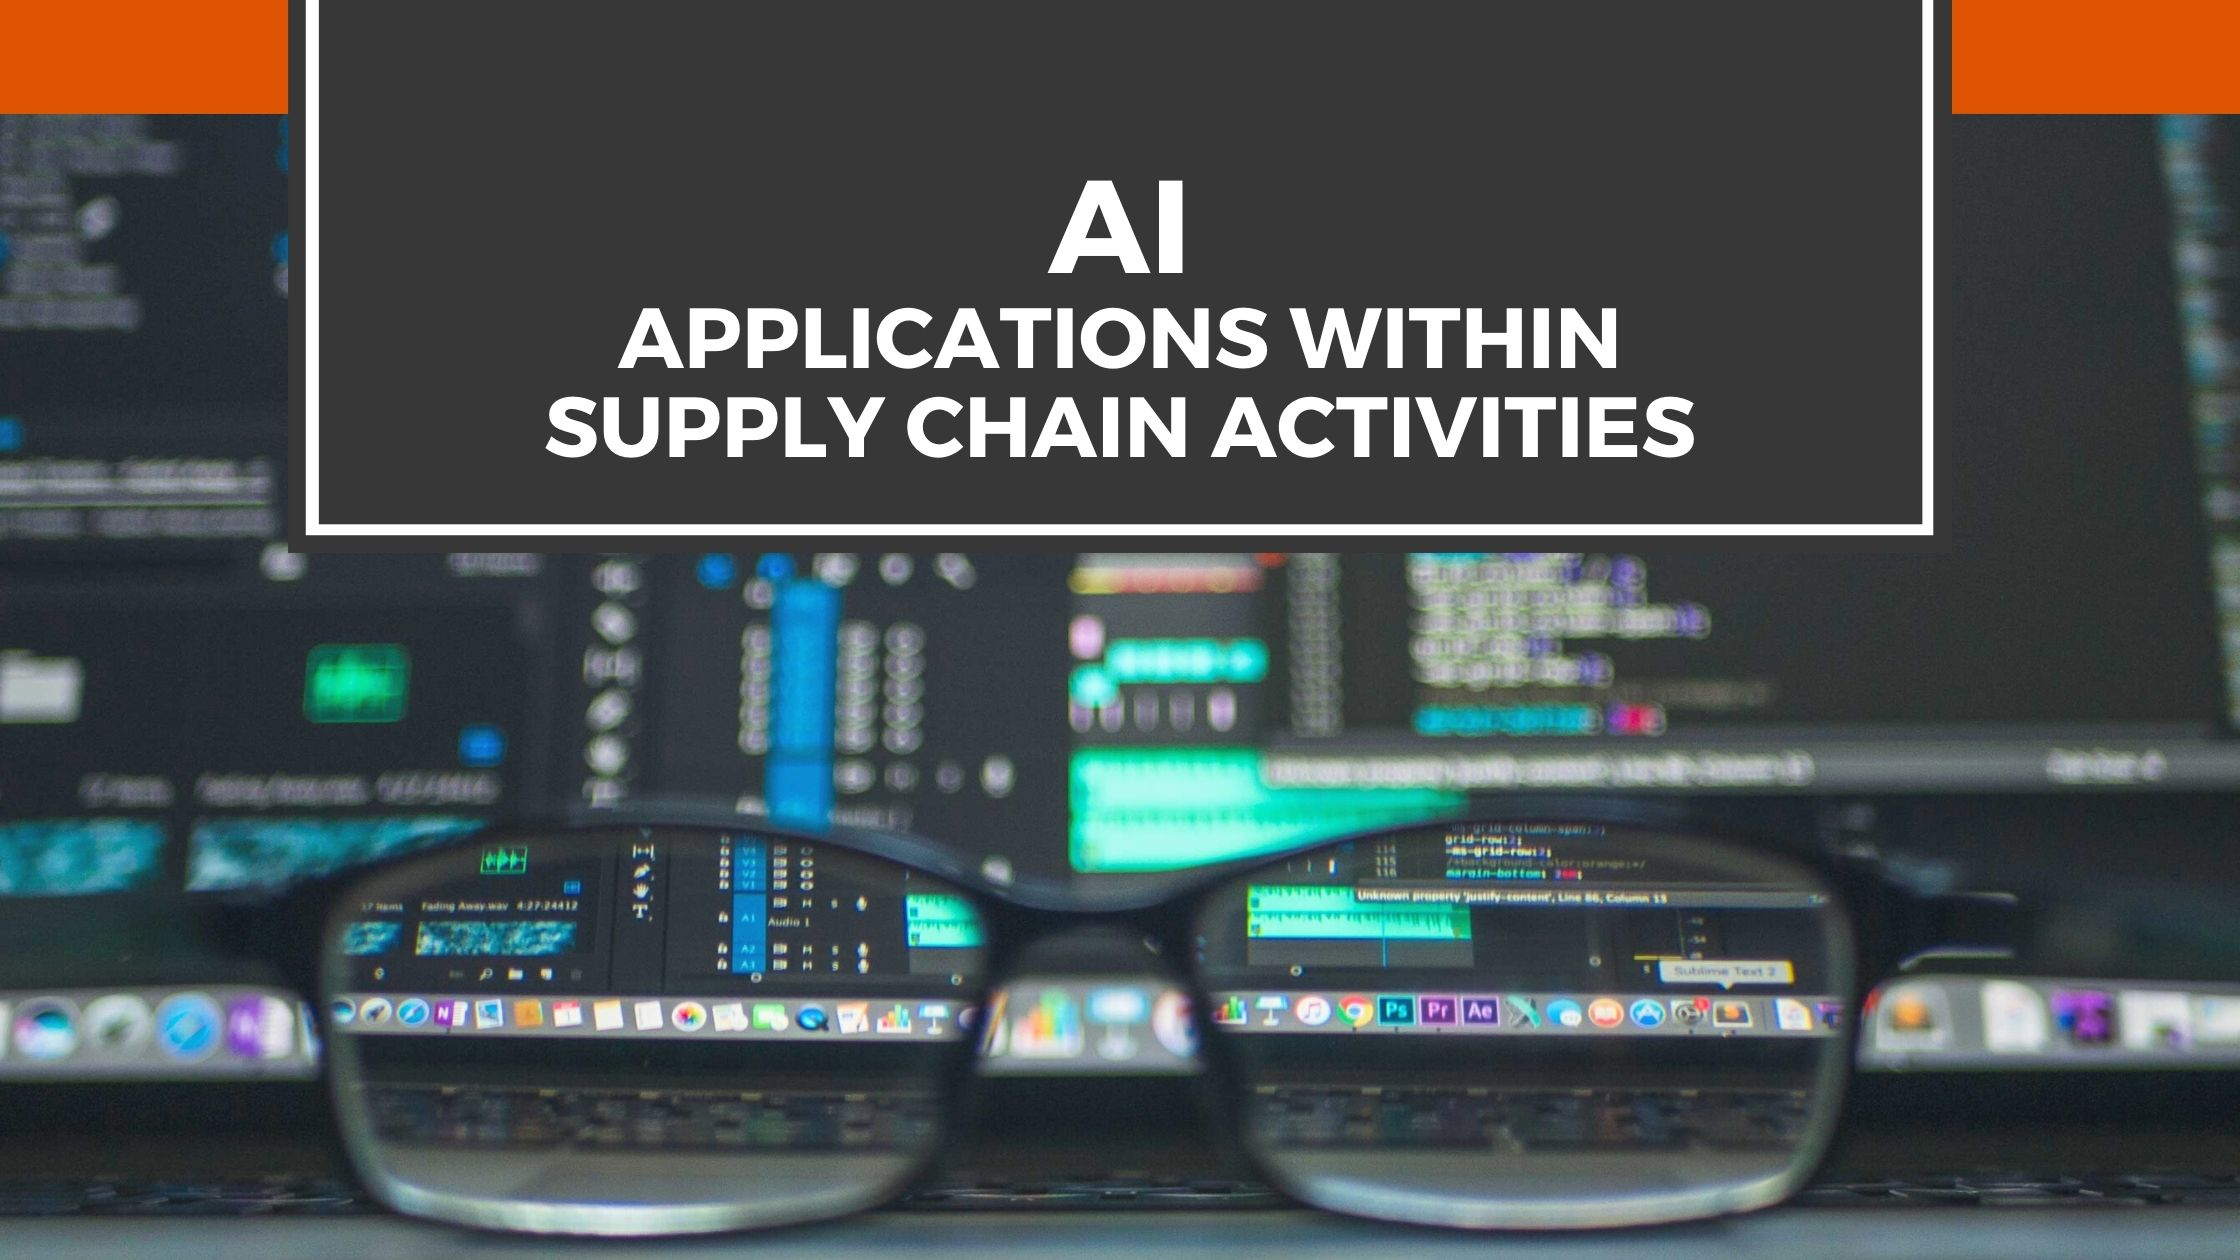 AI Applications within Supply Chain